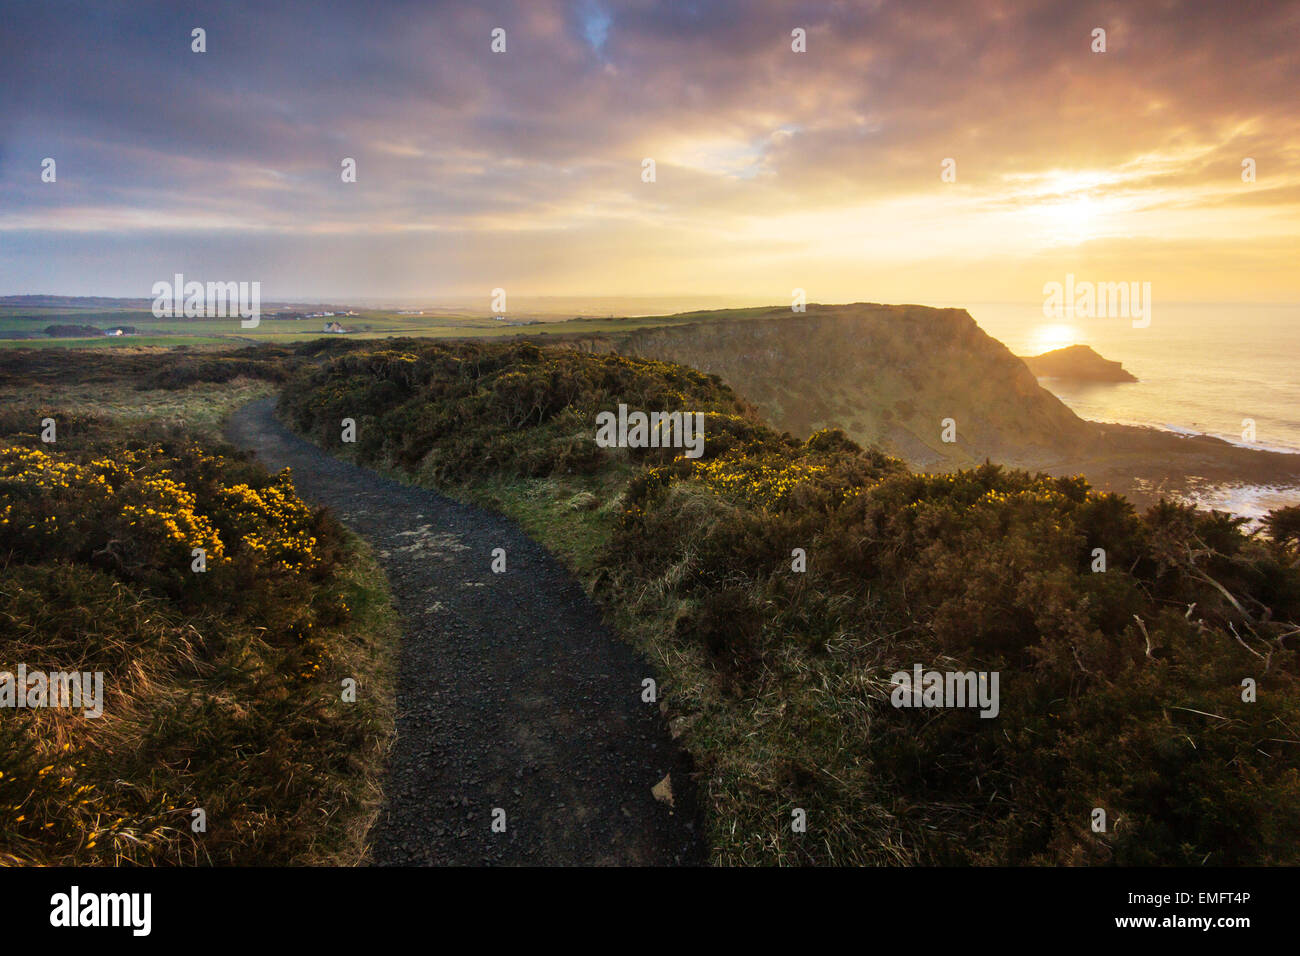 Cliff top path over the Giant's Causeway at sunset, Co. Antrim, Northern Ireland - Stock Image